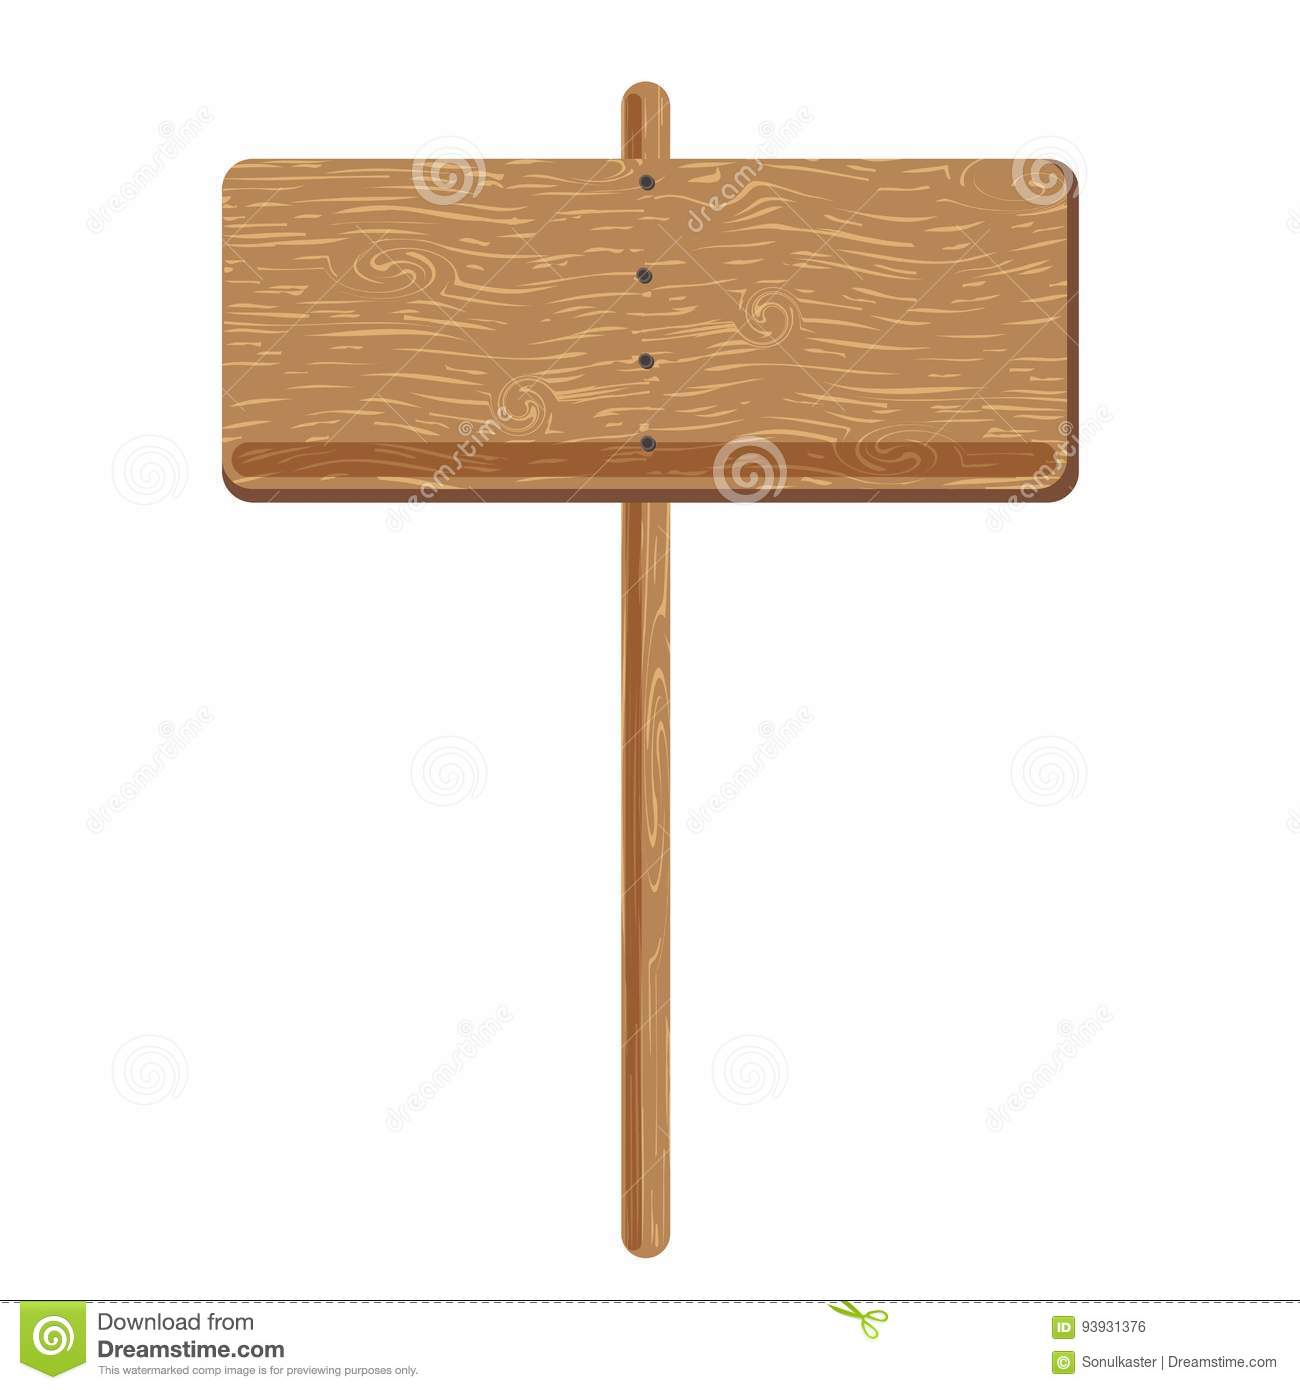 Wooden signage bord or advertising sign pole vector icon